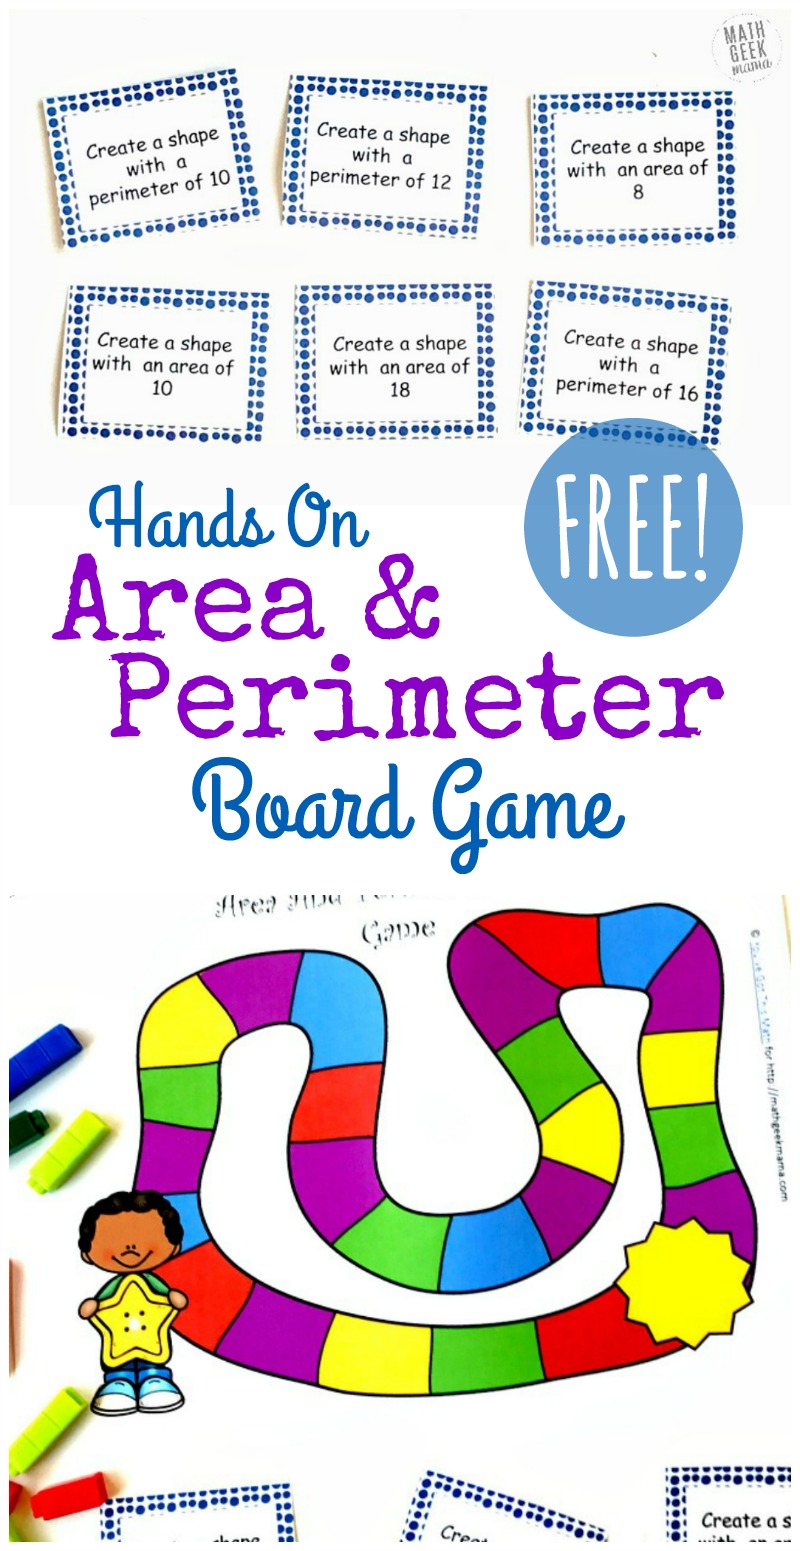 Looking for a new and engaging way to explore area and perimeter? Grab this FREE printable area and perimeter game to give your kids some fun, yet challenging hands on practice! All you need are some cuisinaire rods and you're ready to play.